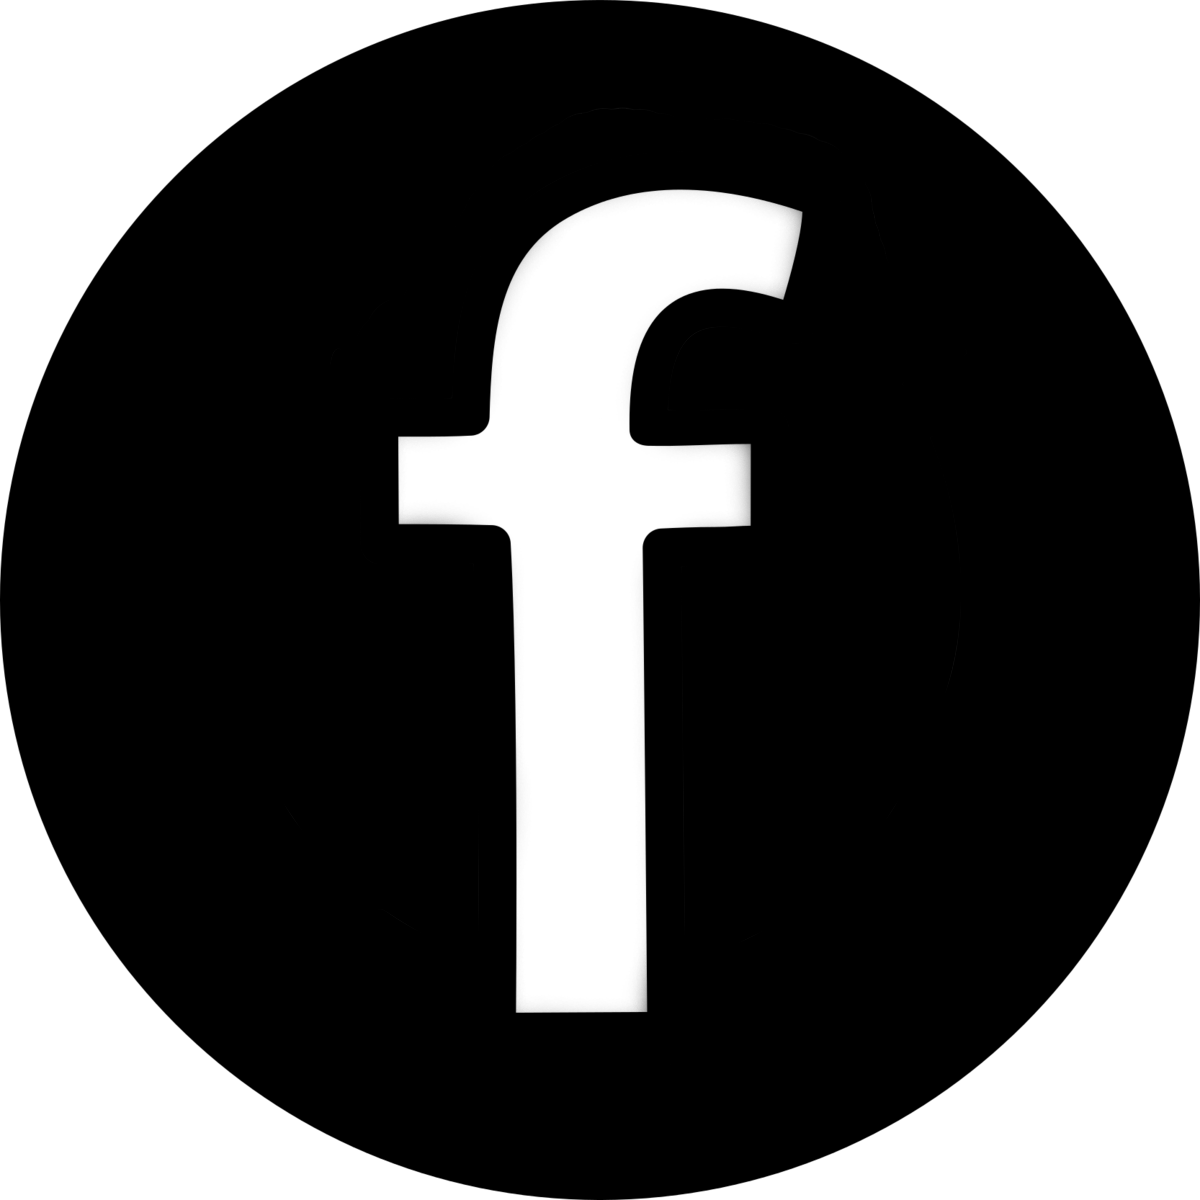 facebook-black-radius-transparent-26.png